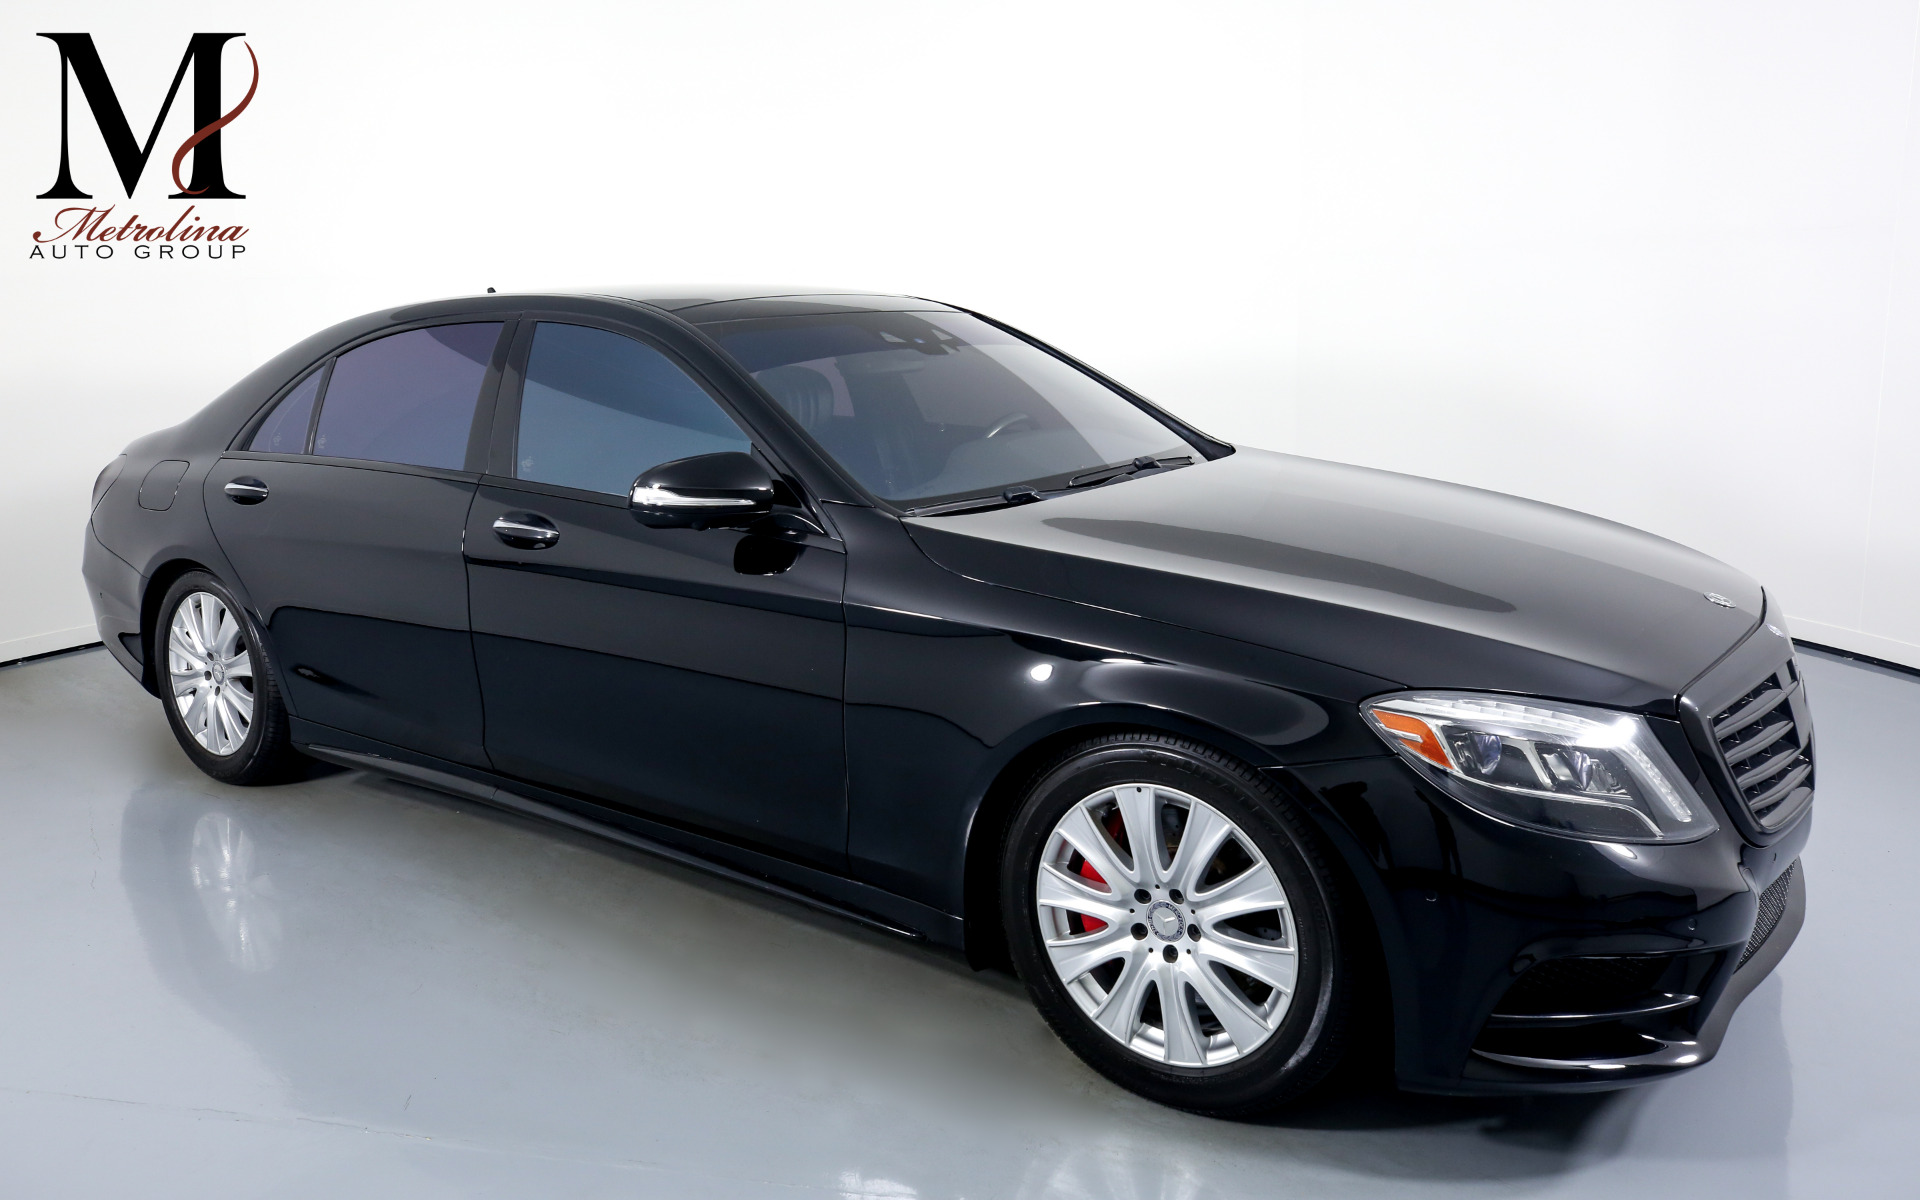 Used 2017 Mercedes-Benz S-Class S 550 for sale Sold at Metrolina Auto Group in Charlotte NC 28217 - 1